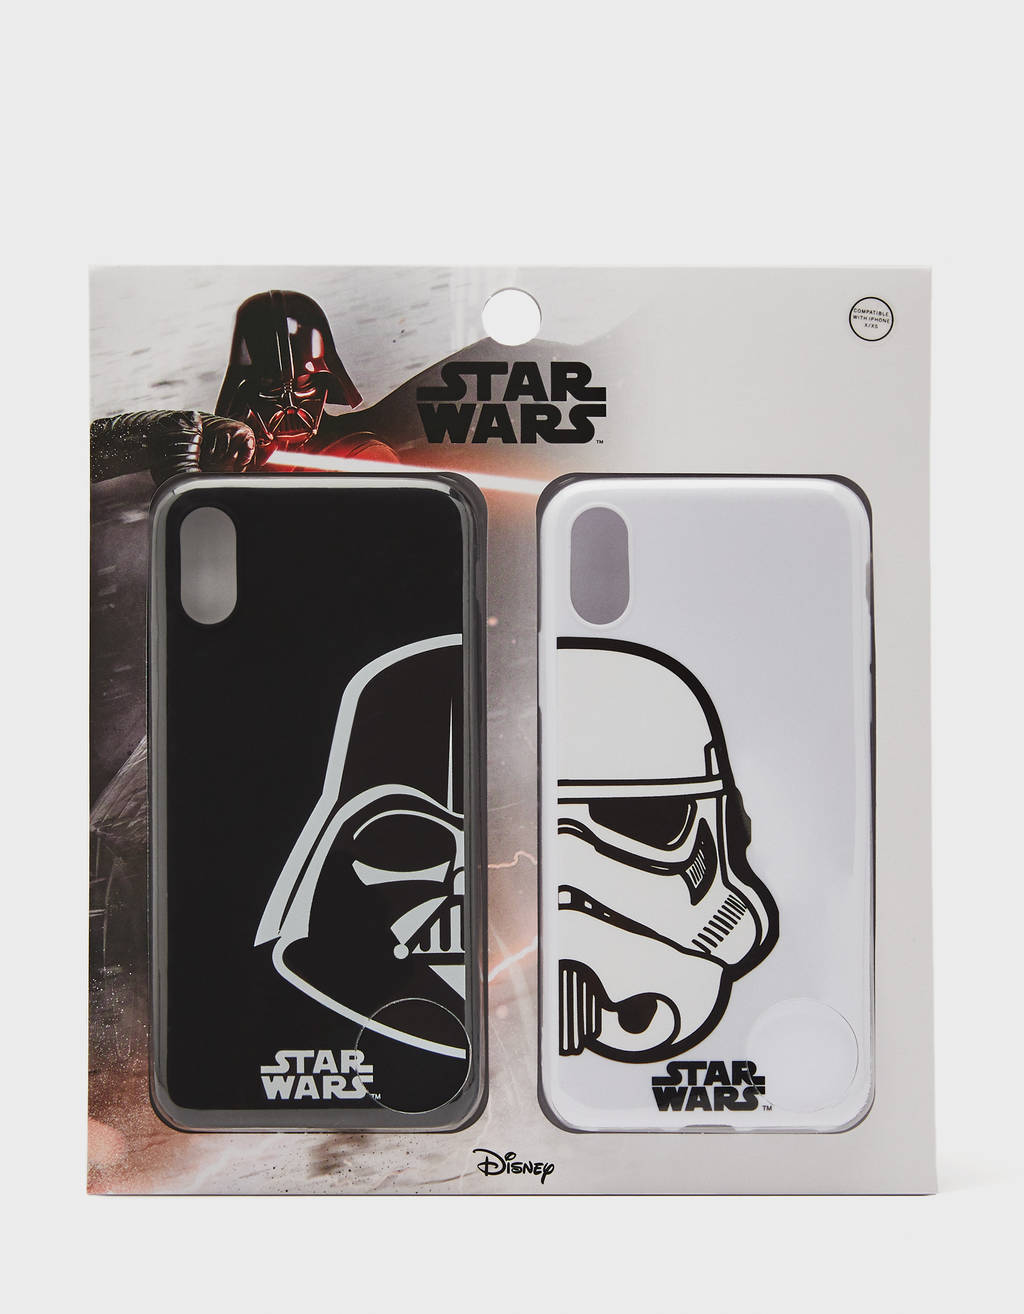 Set of Star Wars iPhone X / XS cases